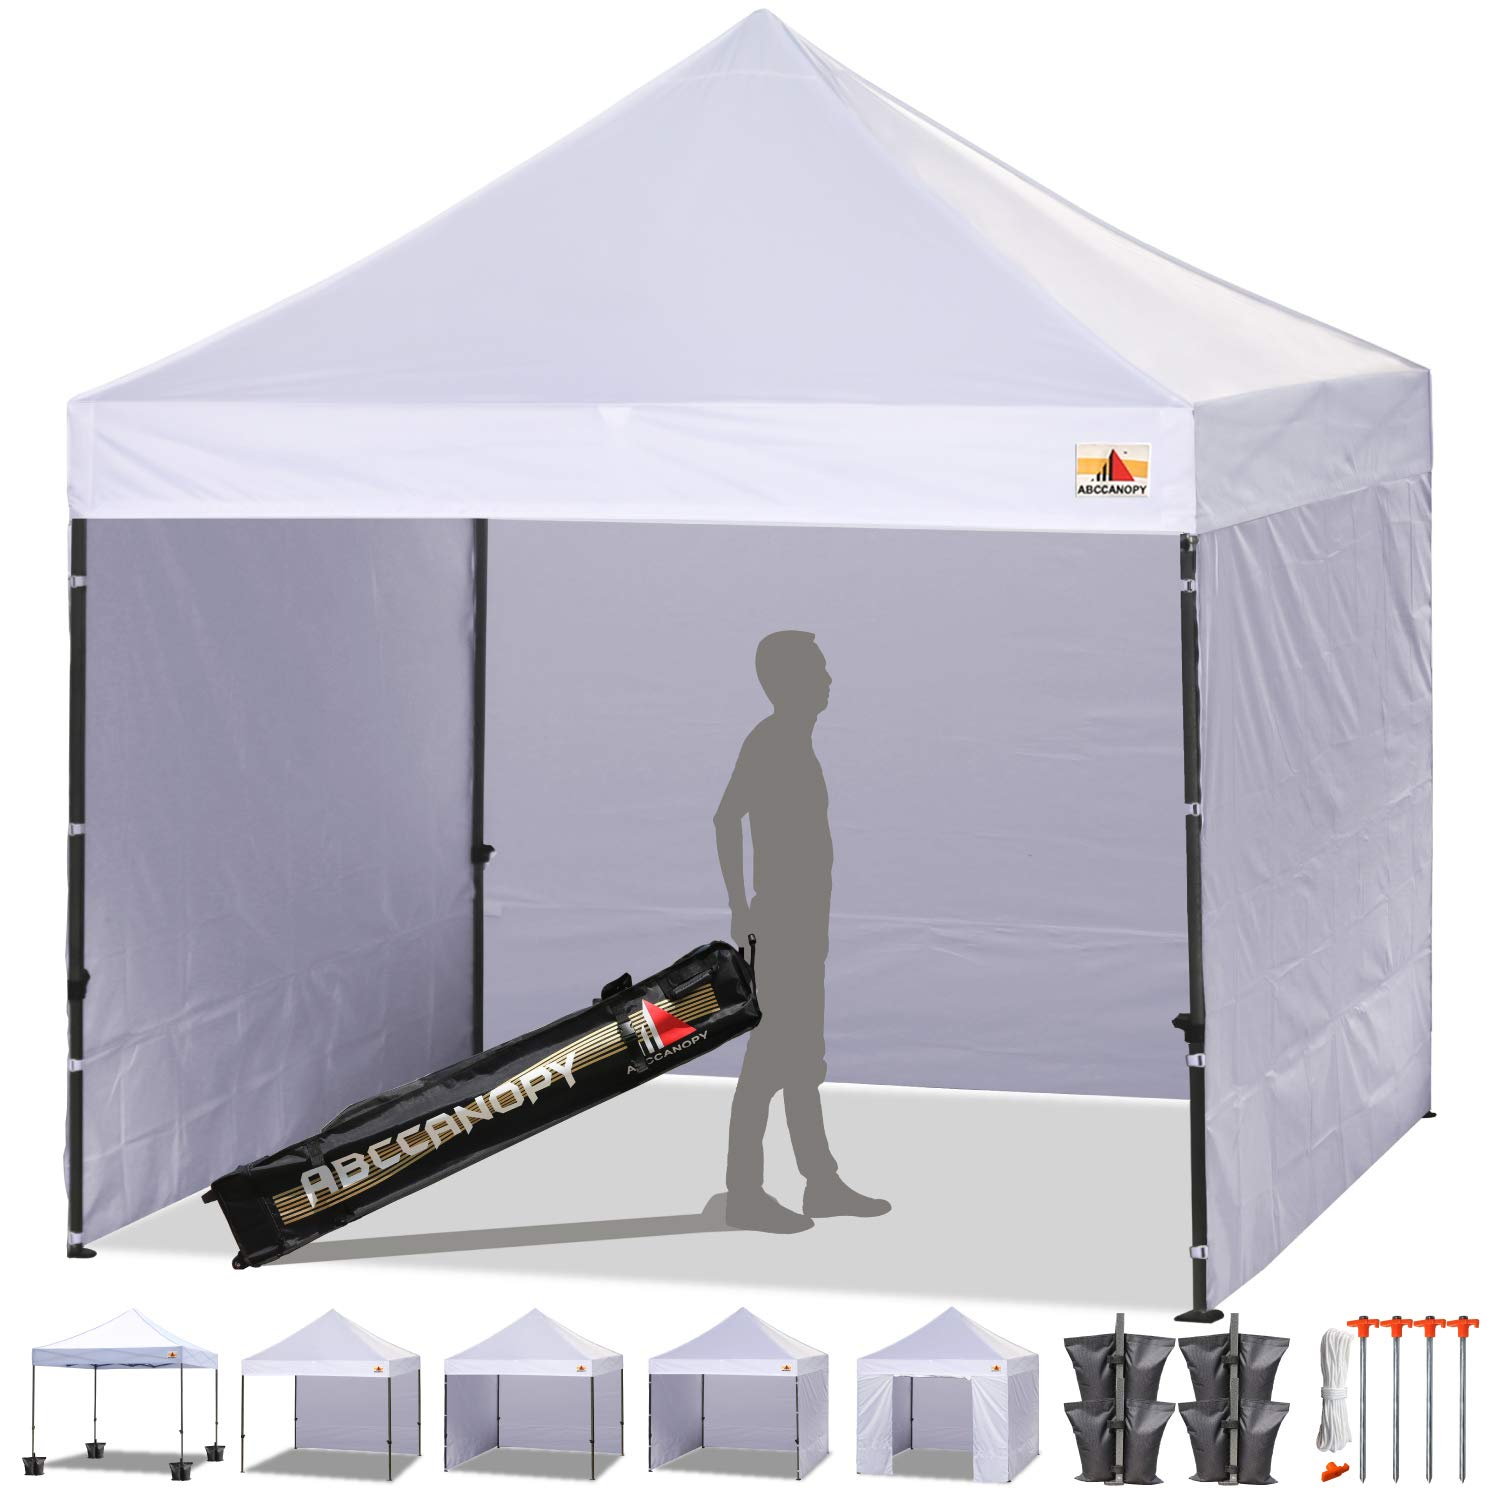 ABCCANOPY Pop-up Canopy Tent 8x8 Commercial Instant Tents Outdoor Canopies Easy to Set Up with 3 Side Walls and 1 Door Wall,Bonus Roller Bag, 4 Sandbags and Stakes(30+ Multi Colors) by ABCCANOPY